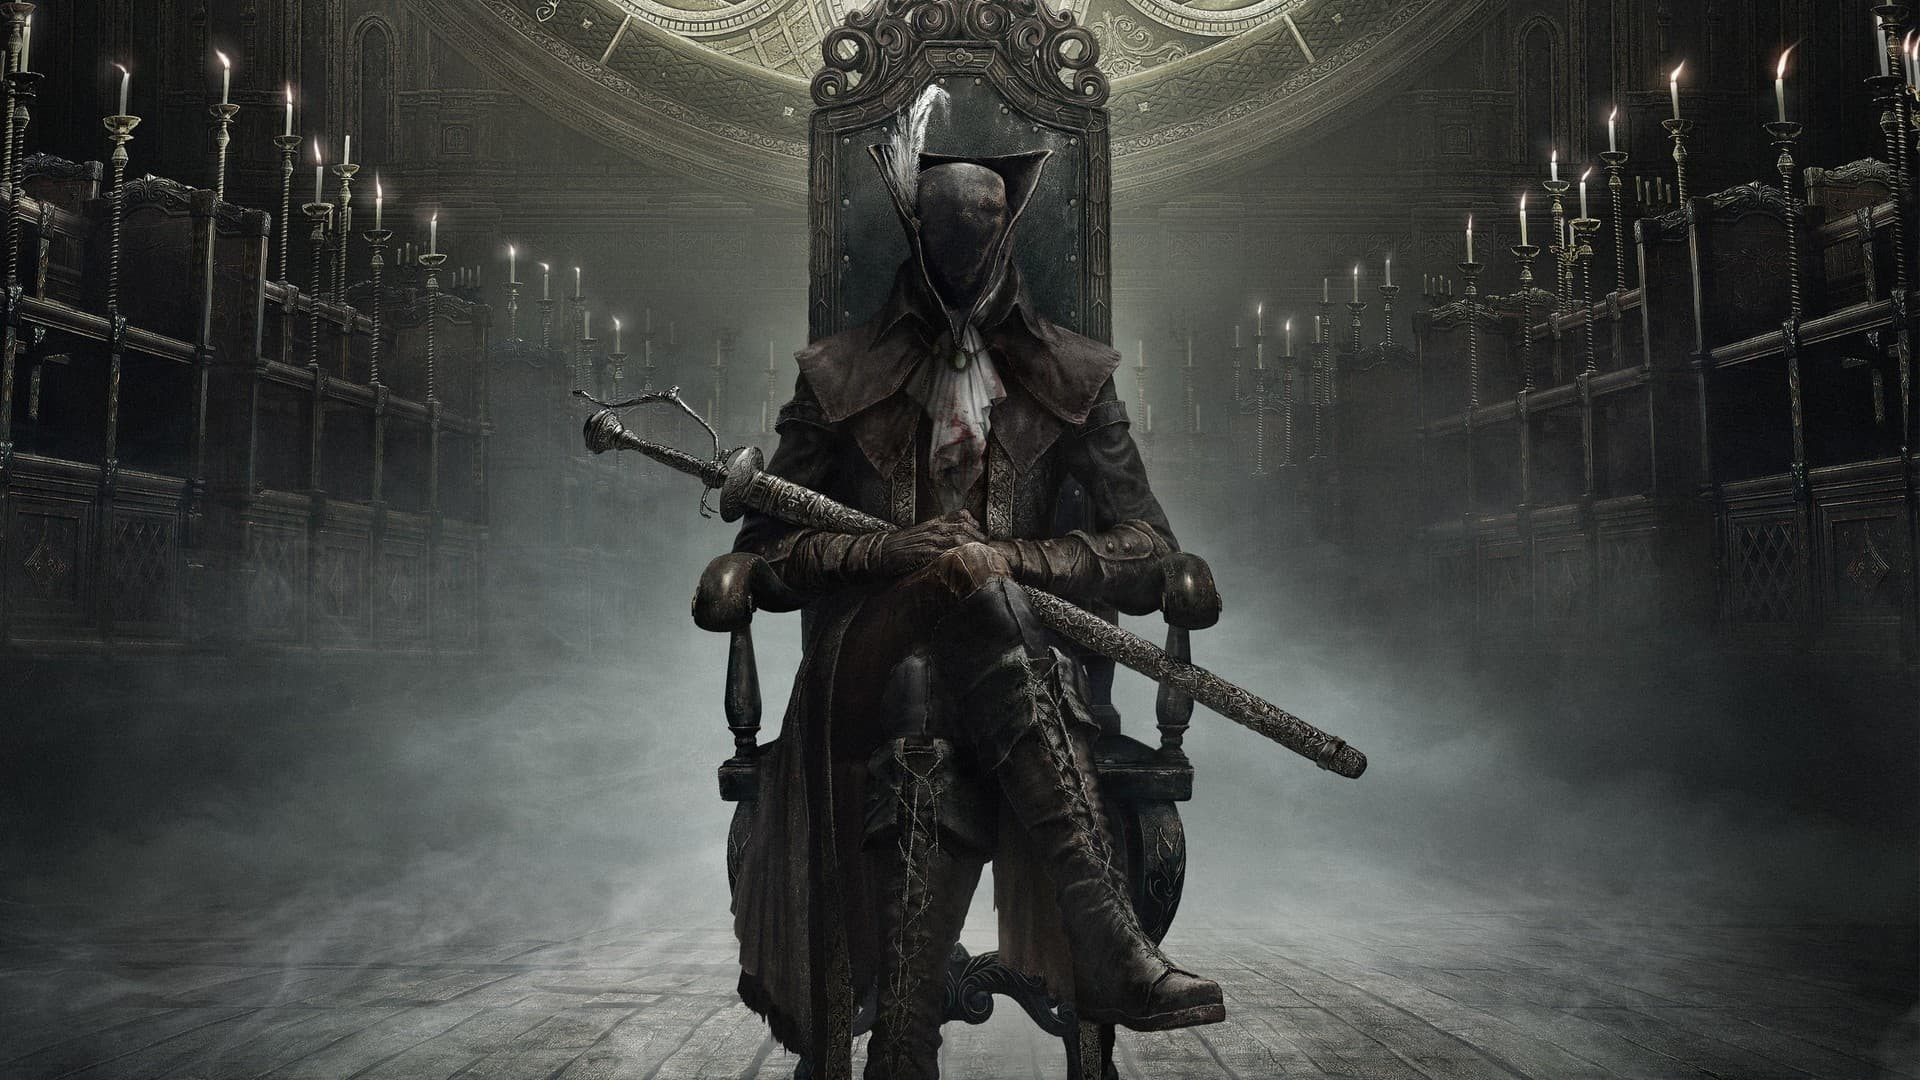 Bloodborne from software